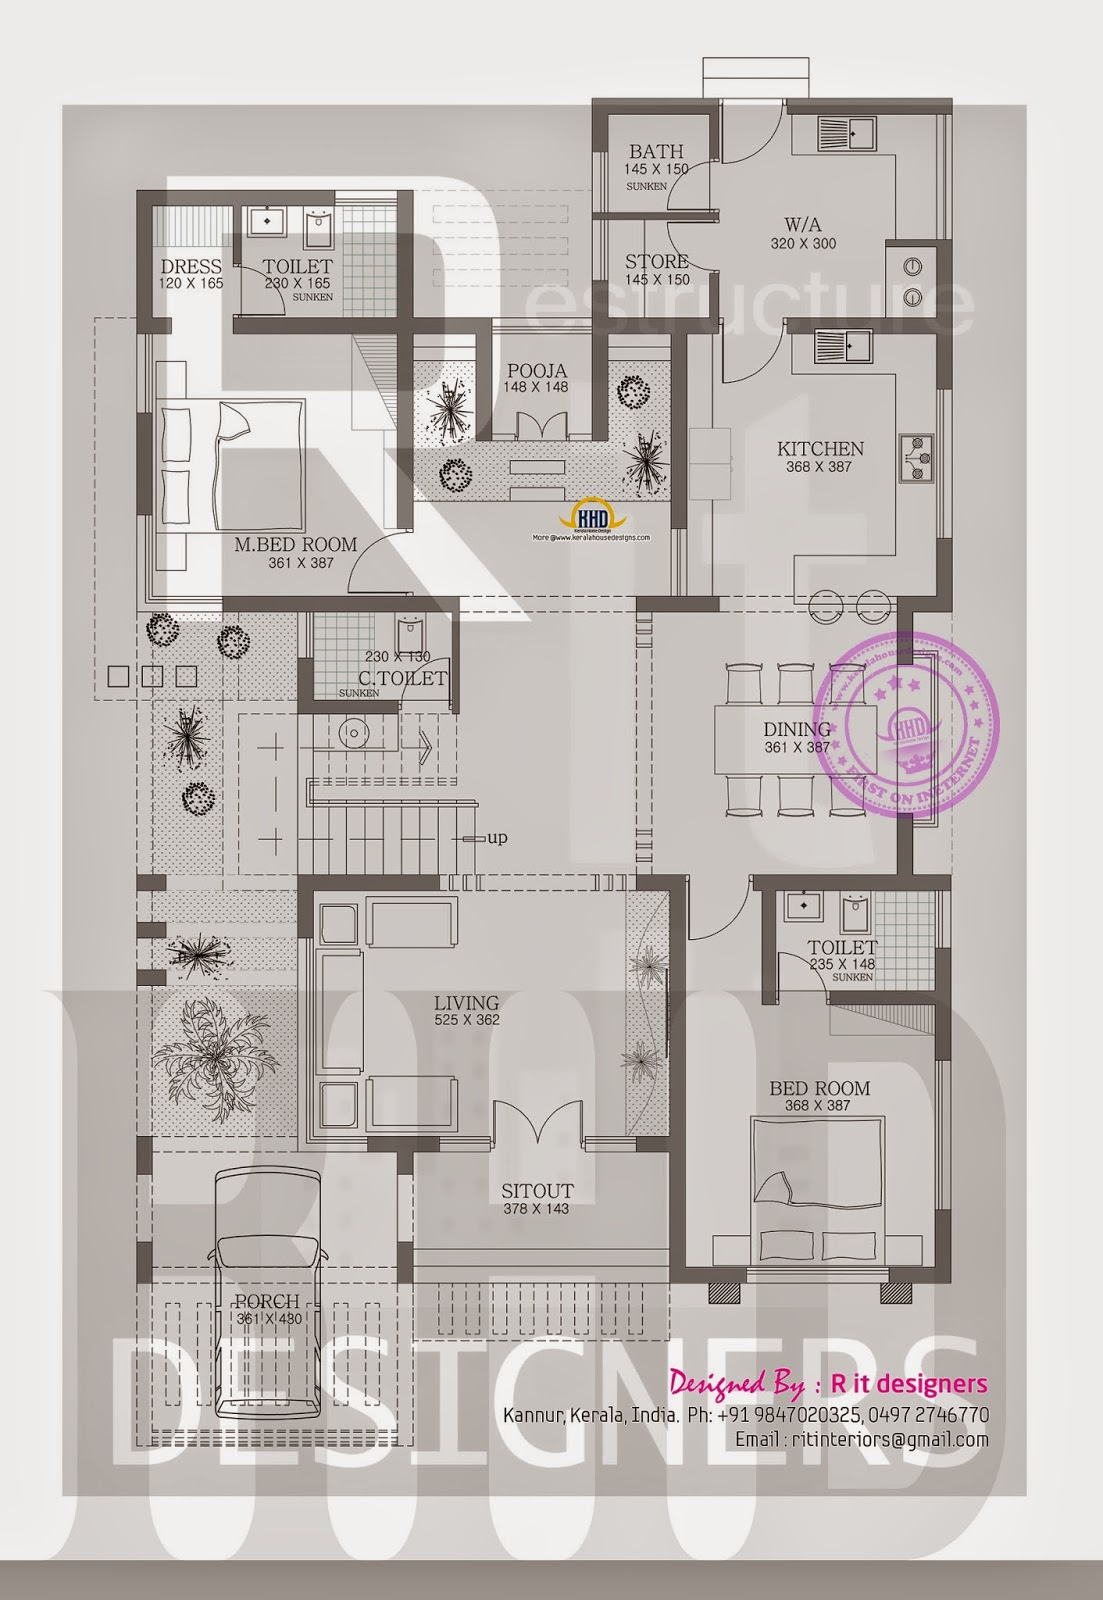 Stylish trendy house plan kerala home design and floor plans for Trendy house plans